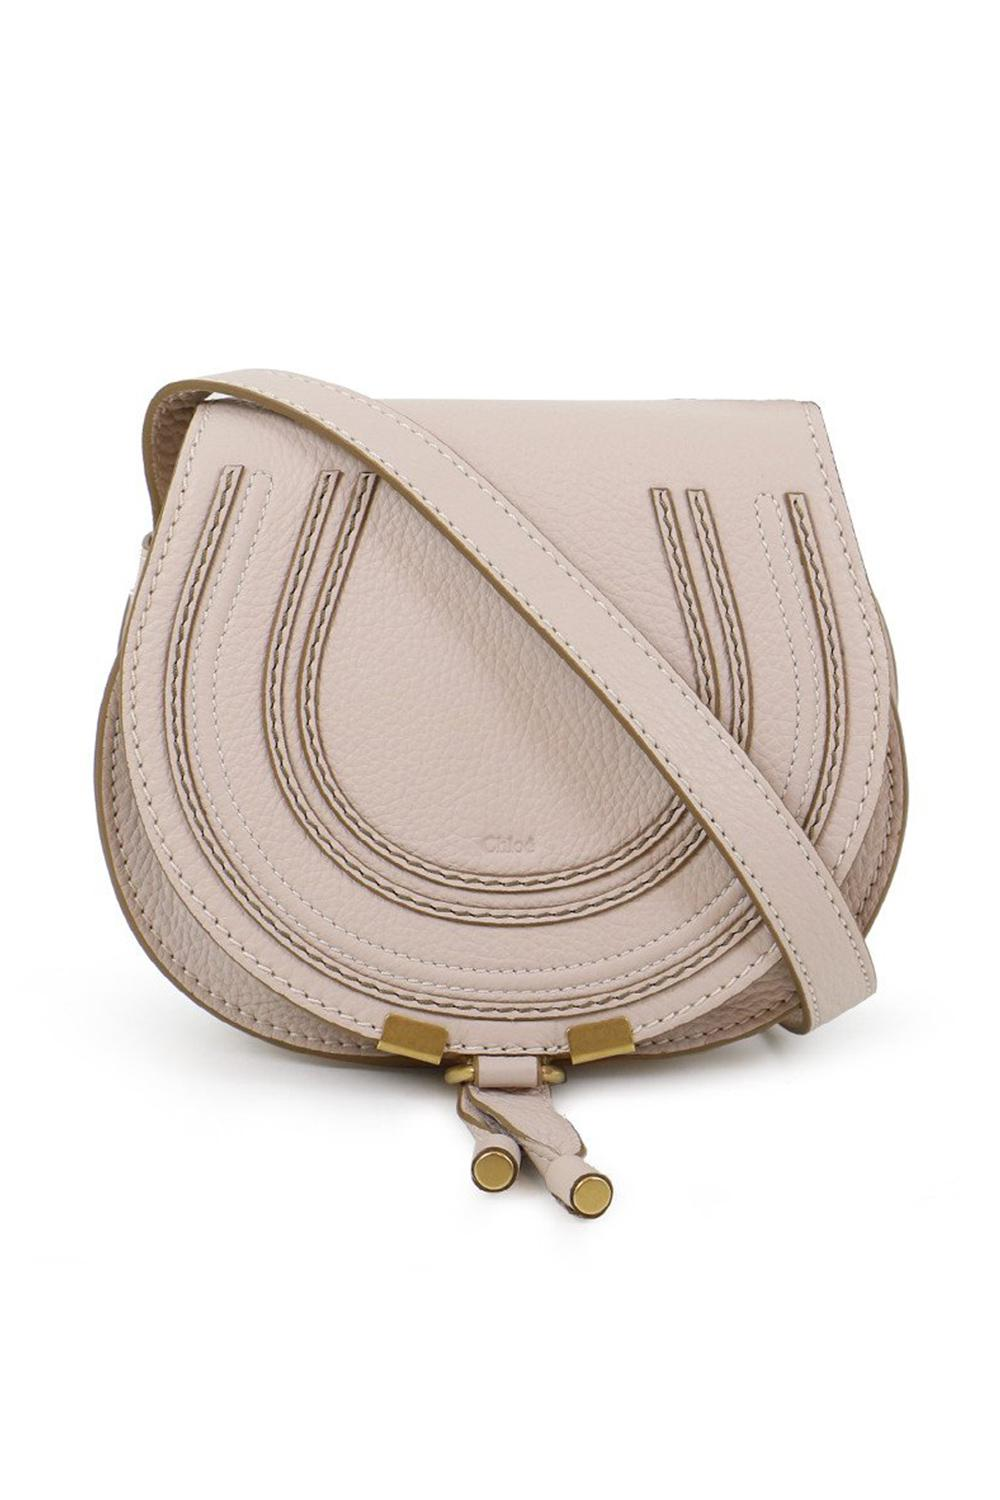 8a98dc0eae Chloé Marcie Small Bag Abstract White in White - Lyst